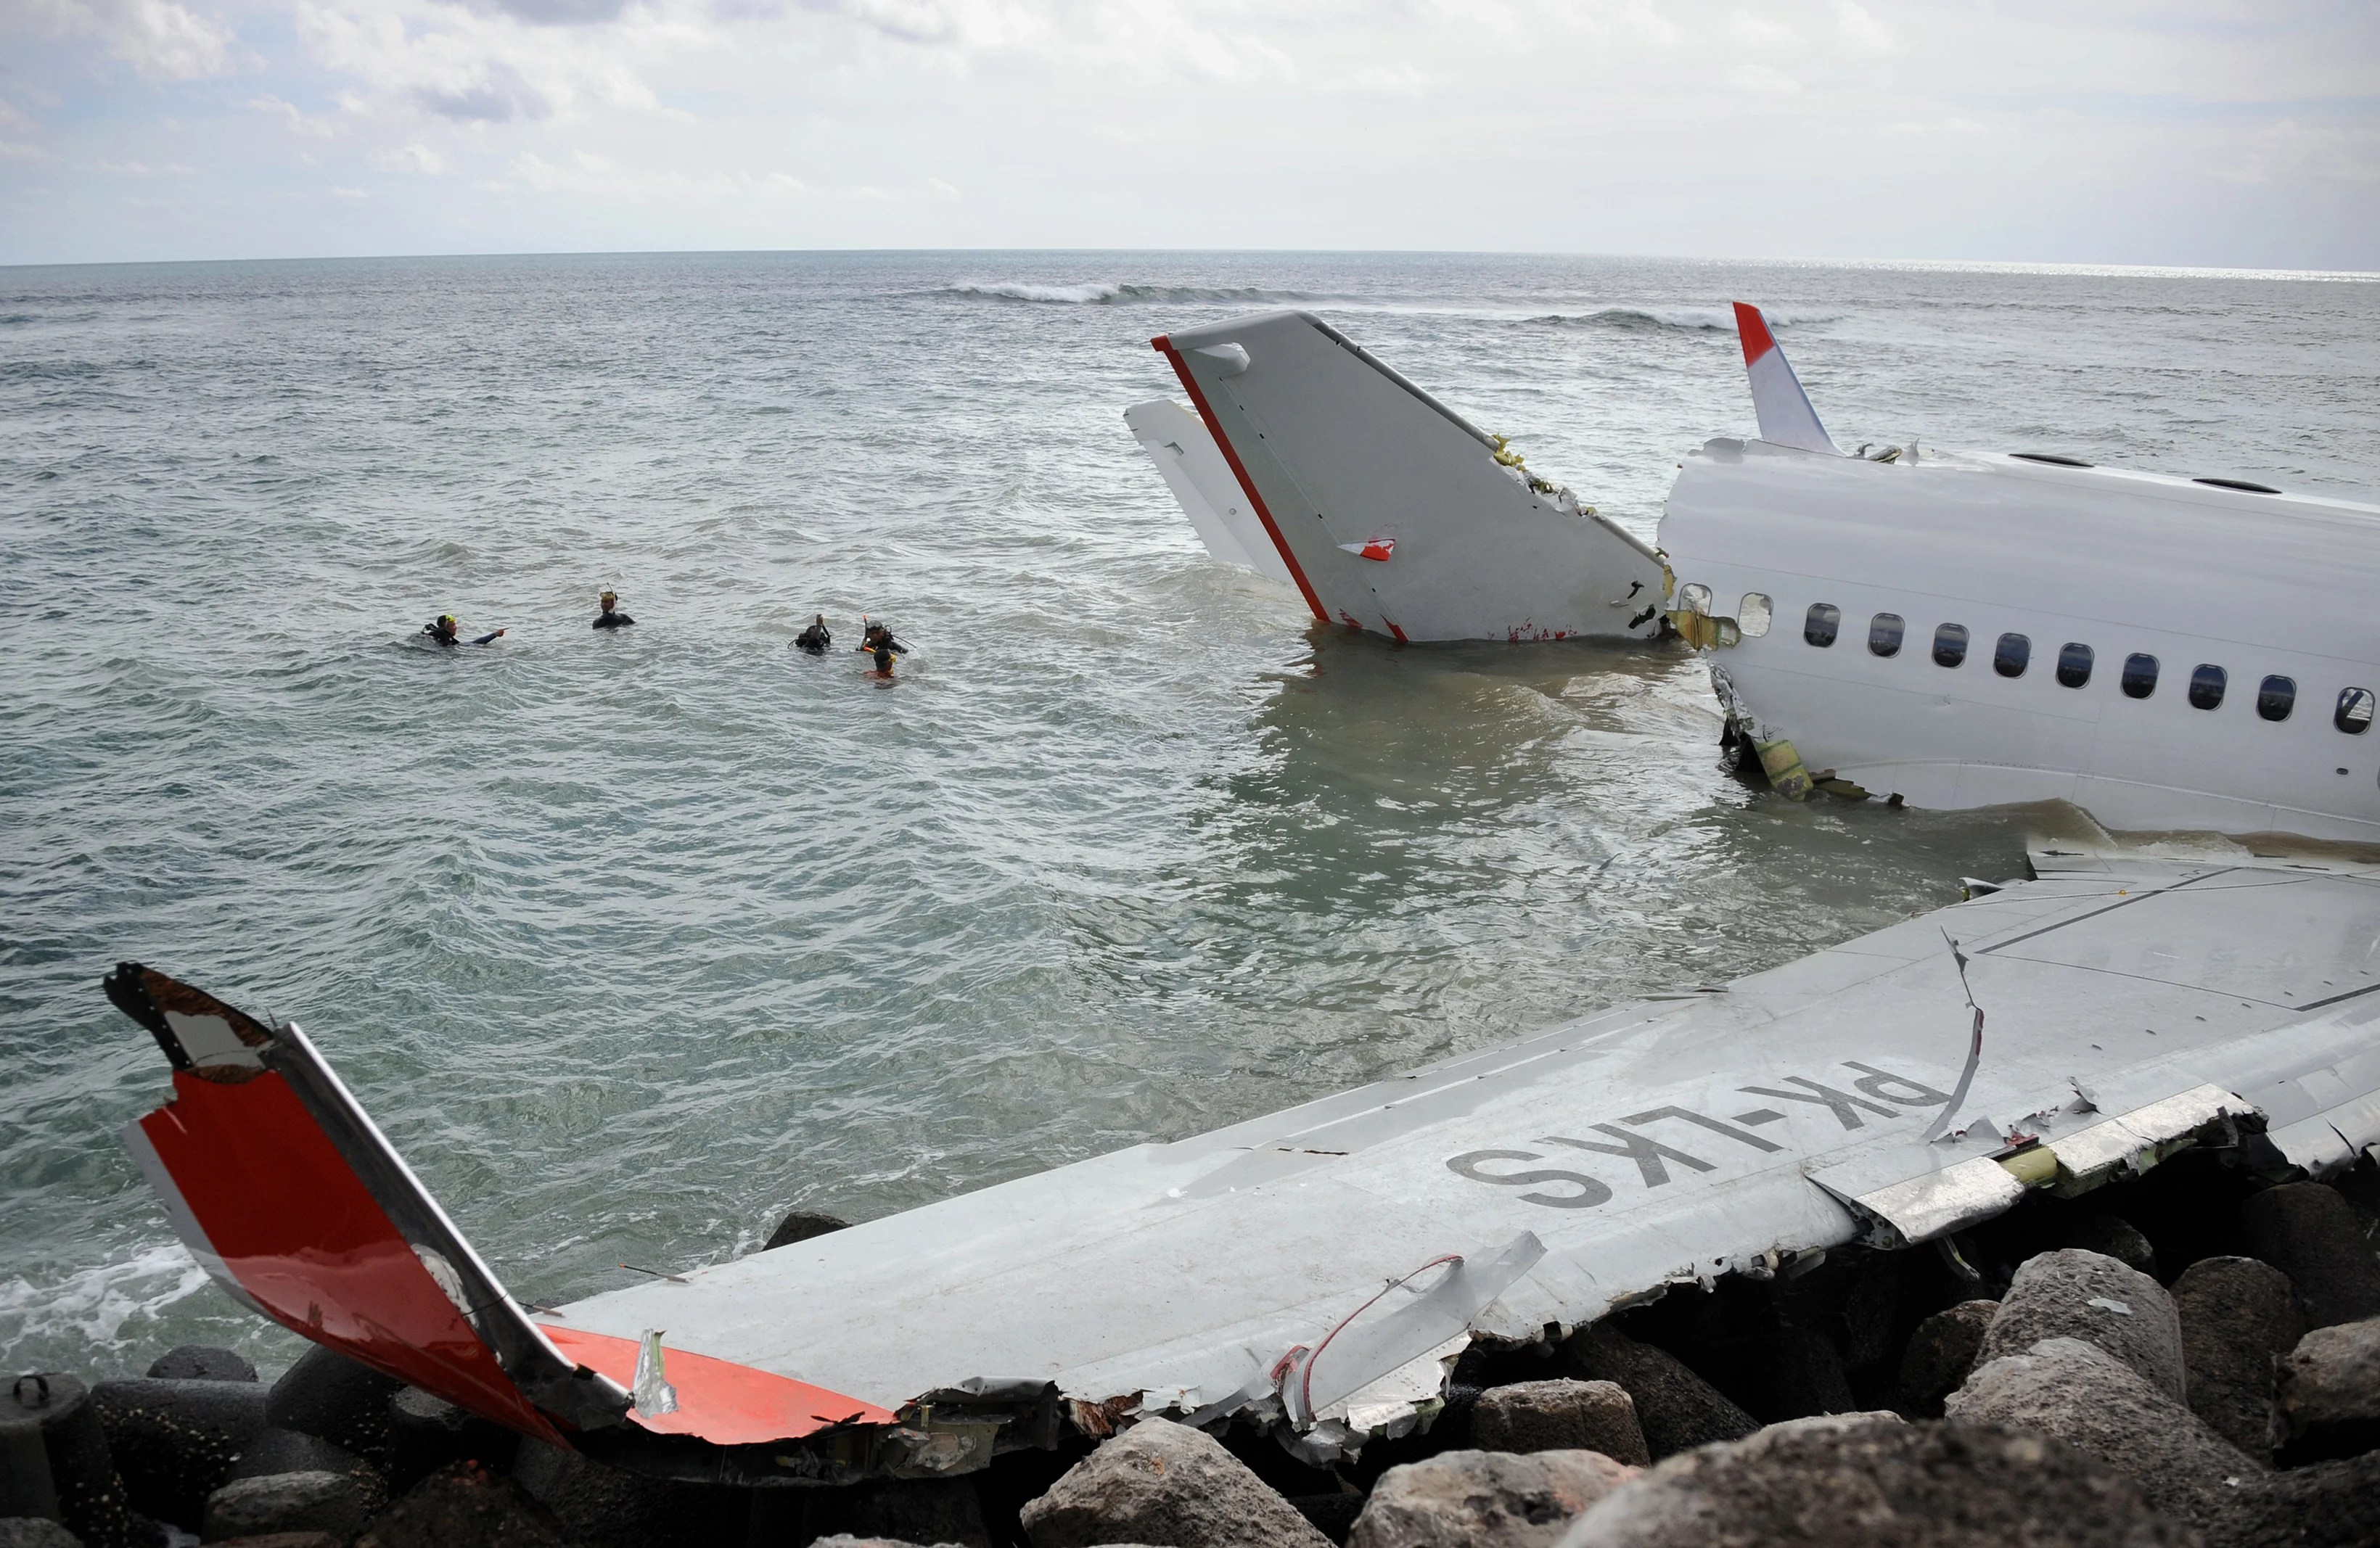 Lion Air Promo Experts Weigh In On Why Lion Air Flight 610 Crashed